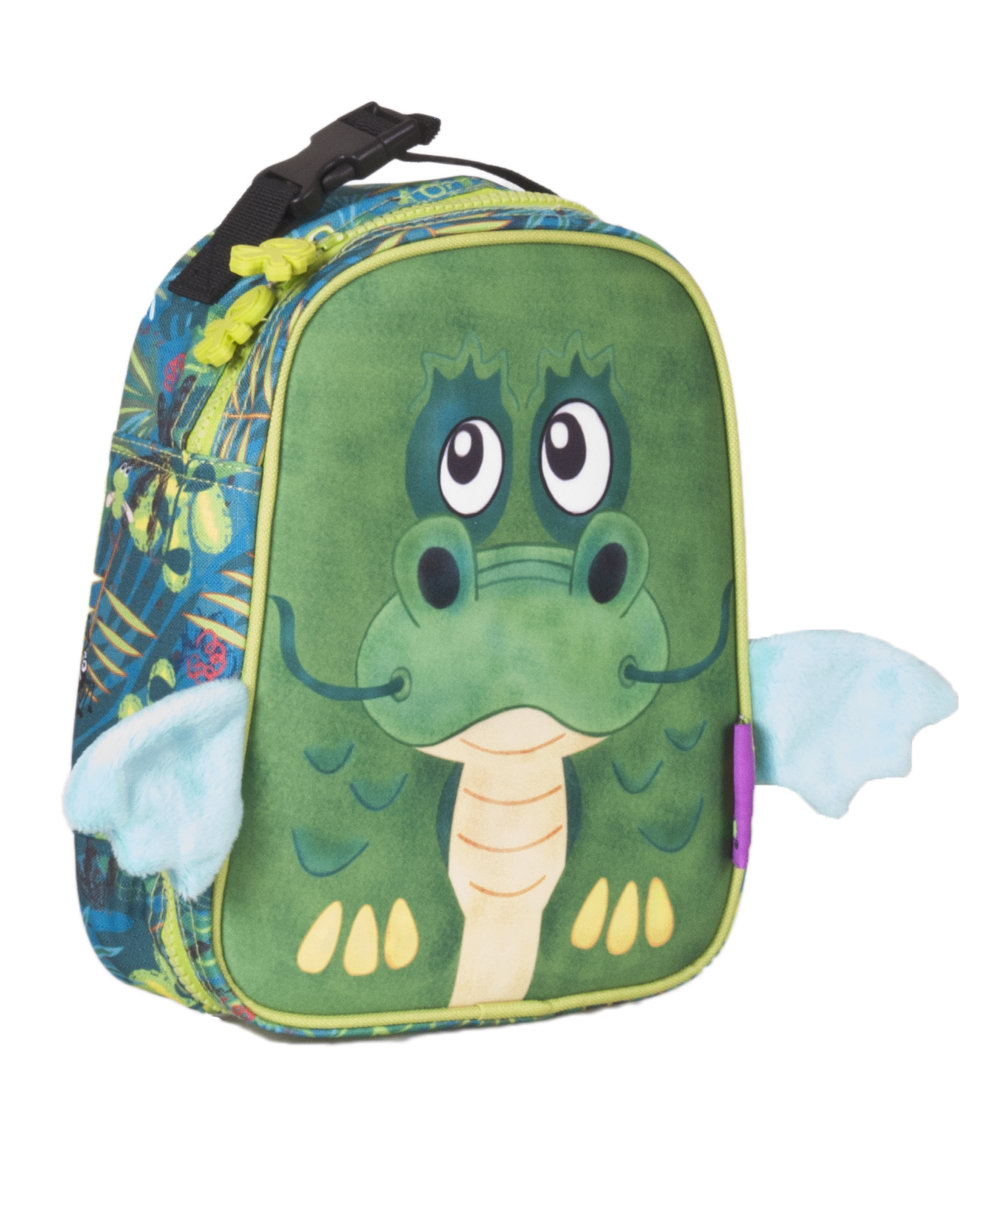 86021 Wildpack Junior lunch bag Dragon